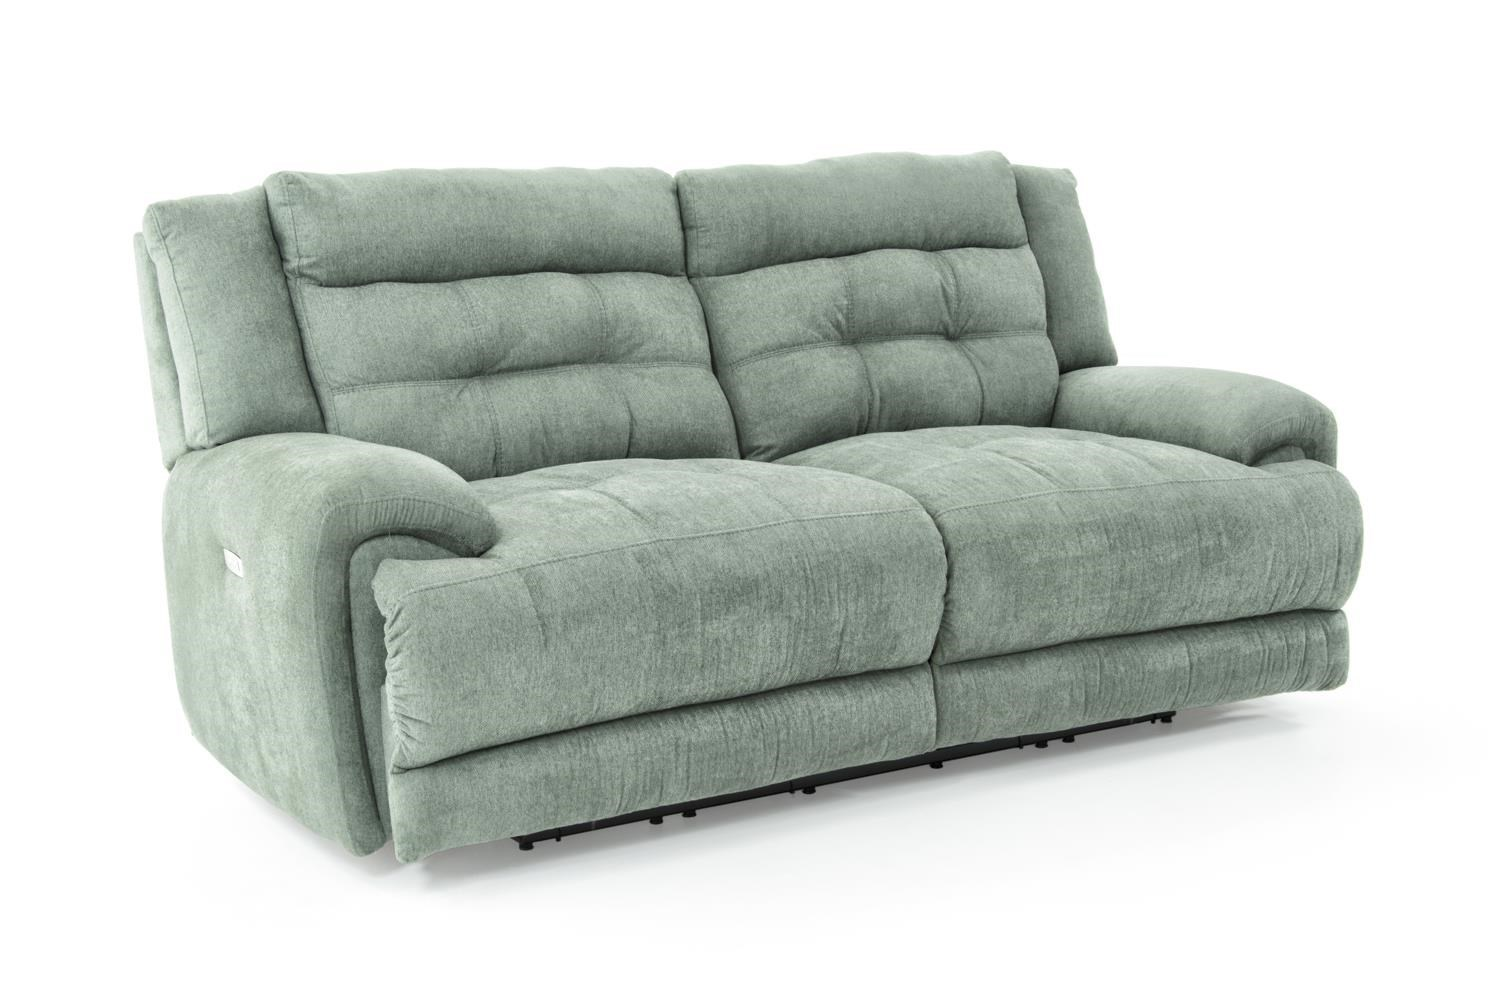 Lane CorsicaPowerized Double Reclining Sofa; Lane CorsicaPowerized Double Reclining  Sofa ...